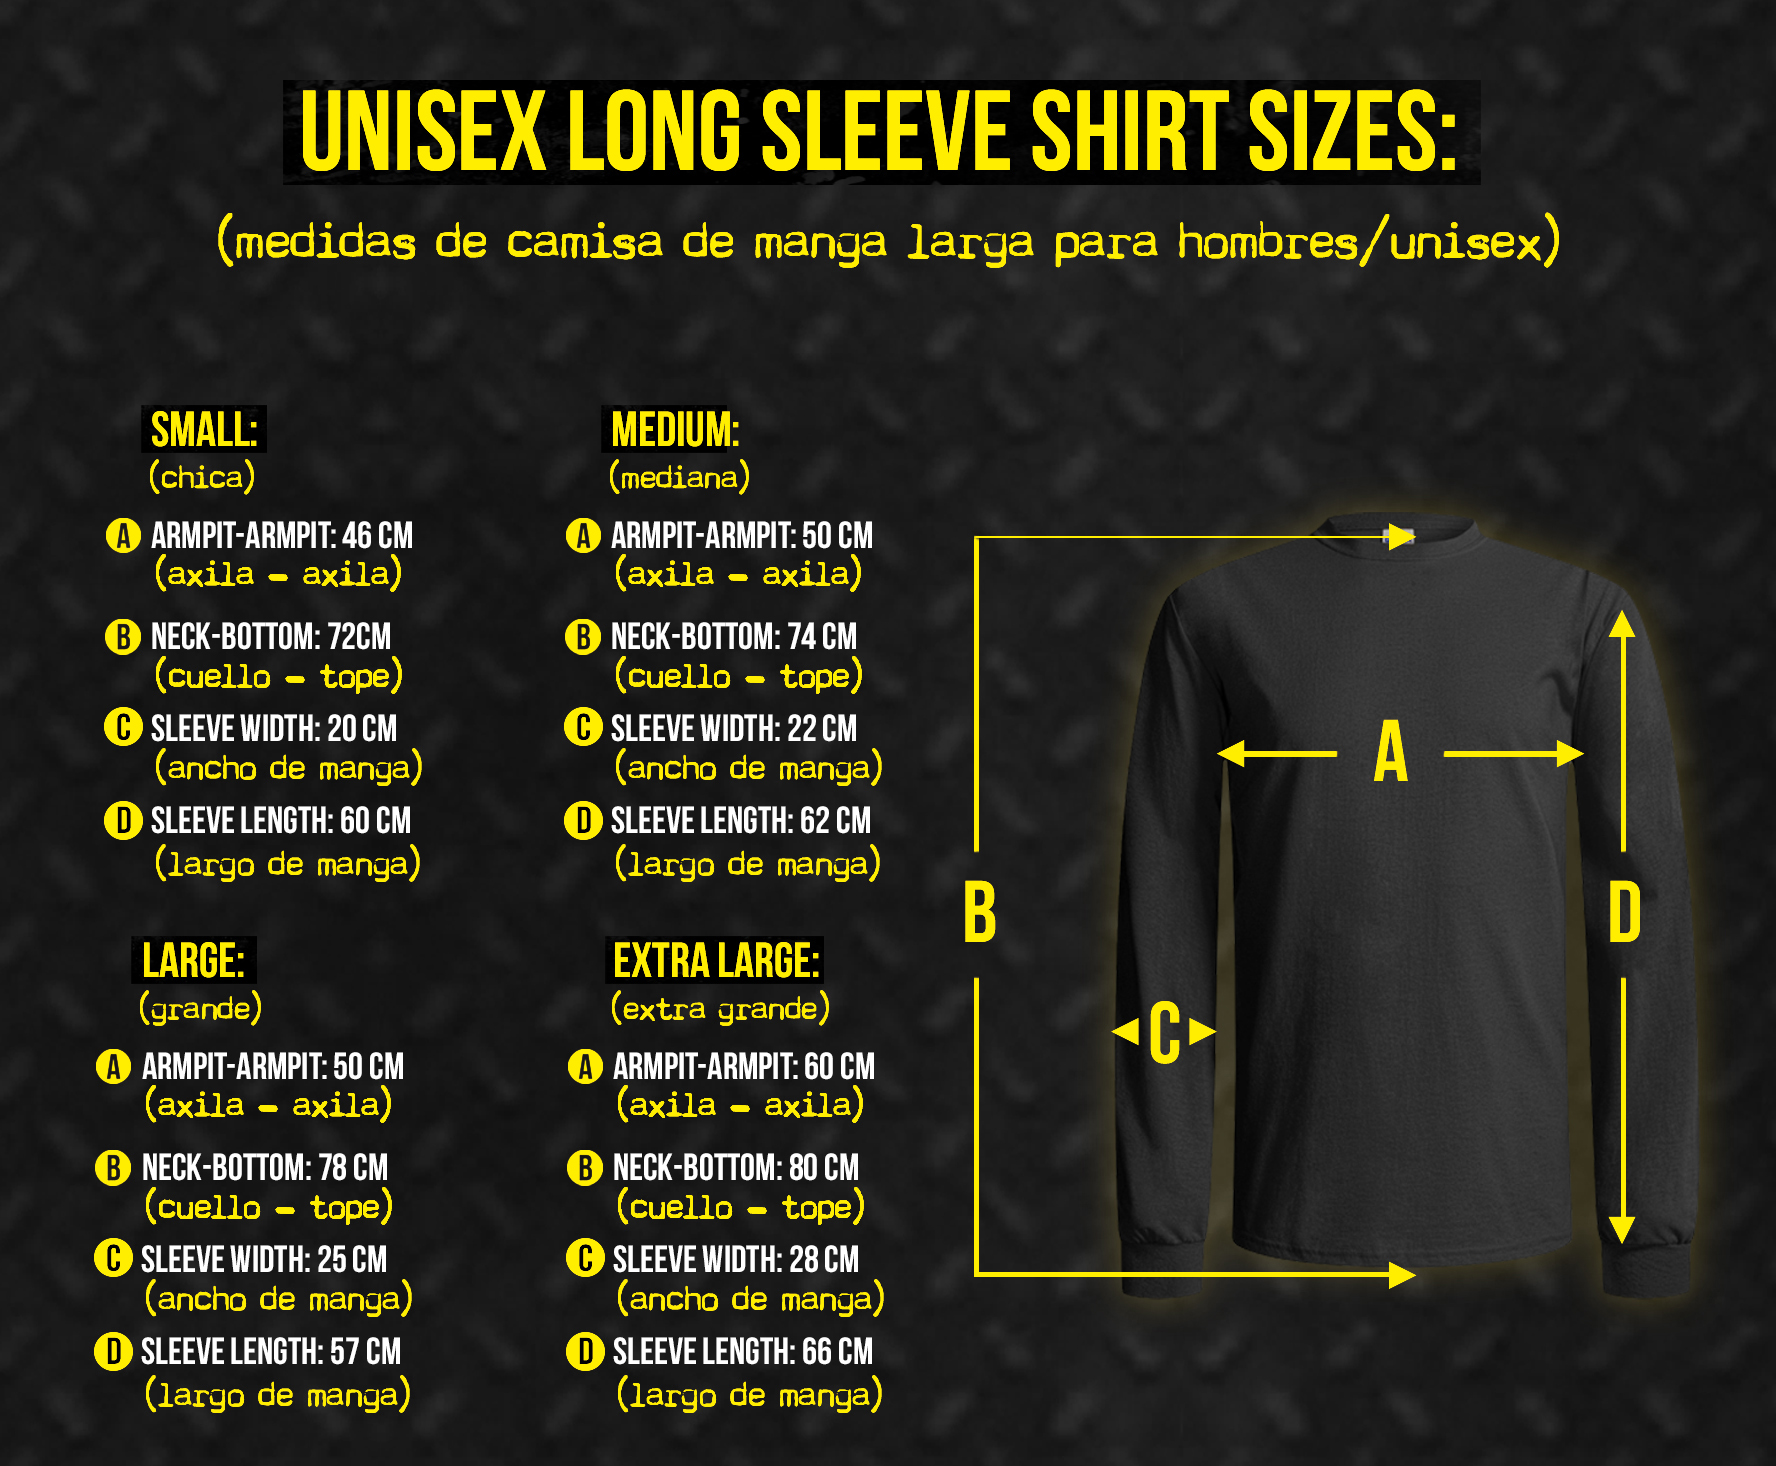 long-sleeve-sizes.jpg